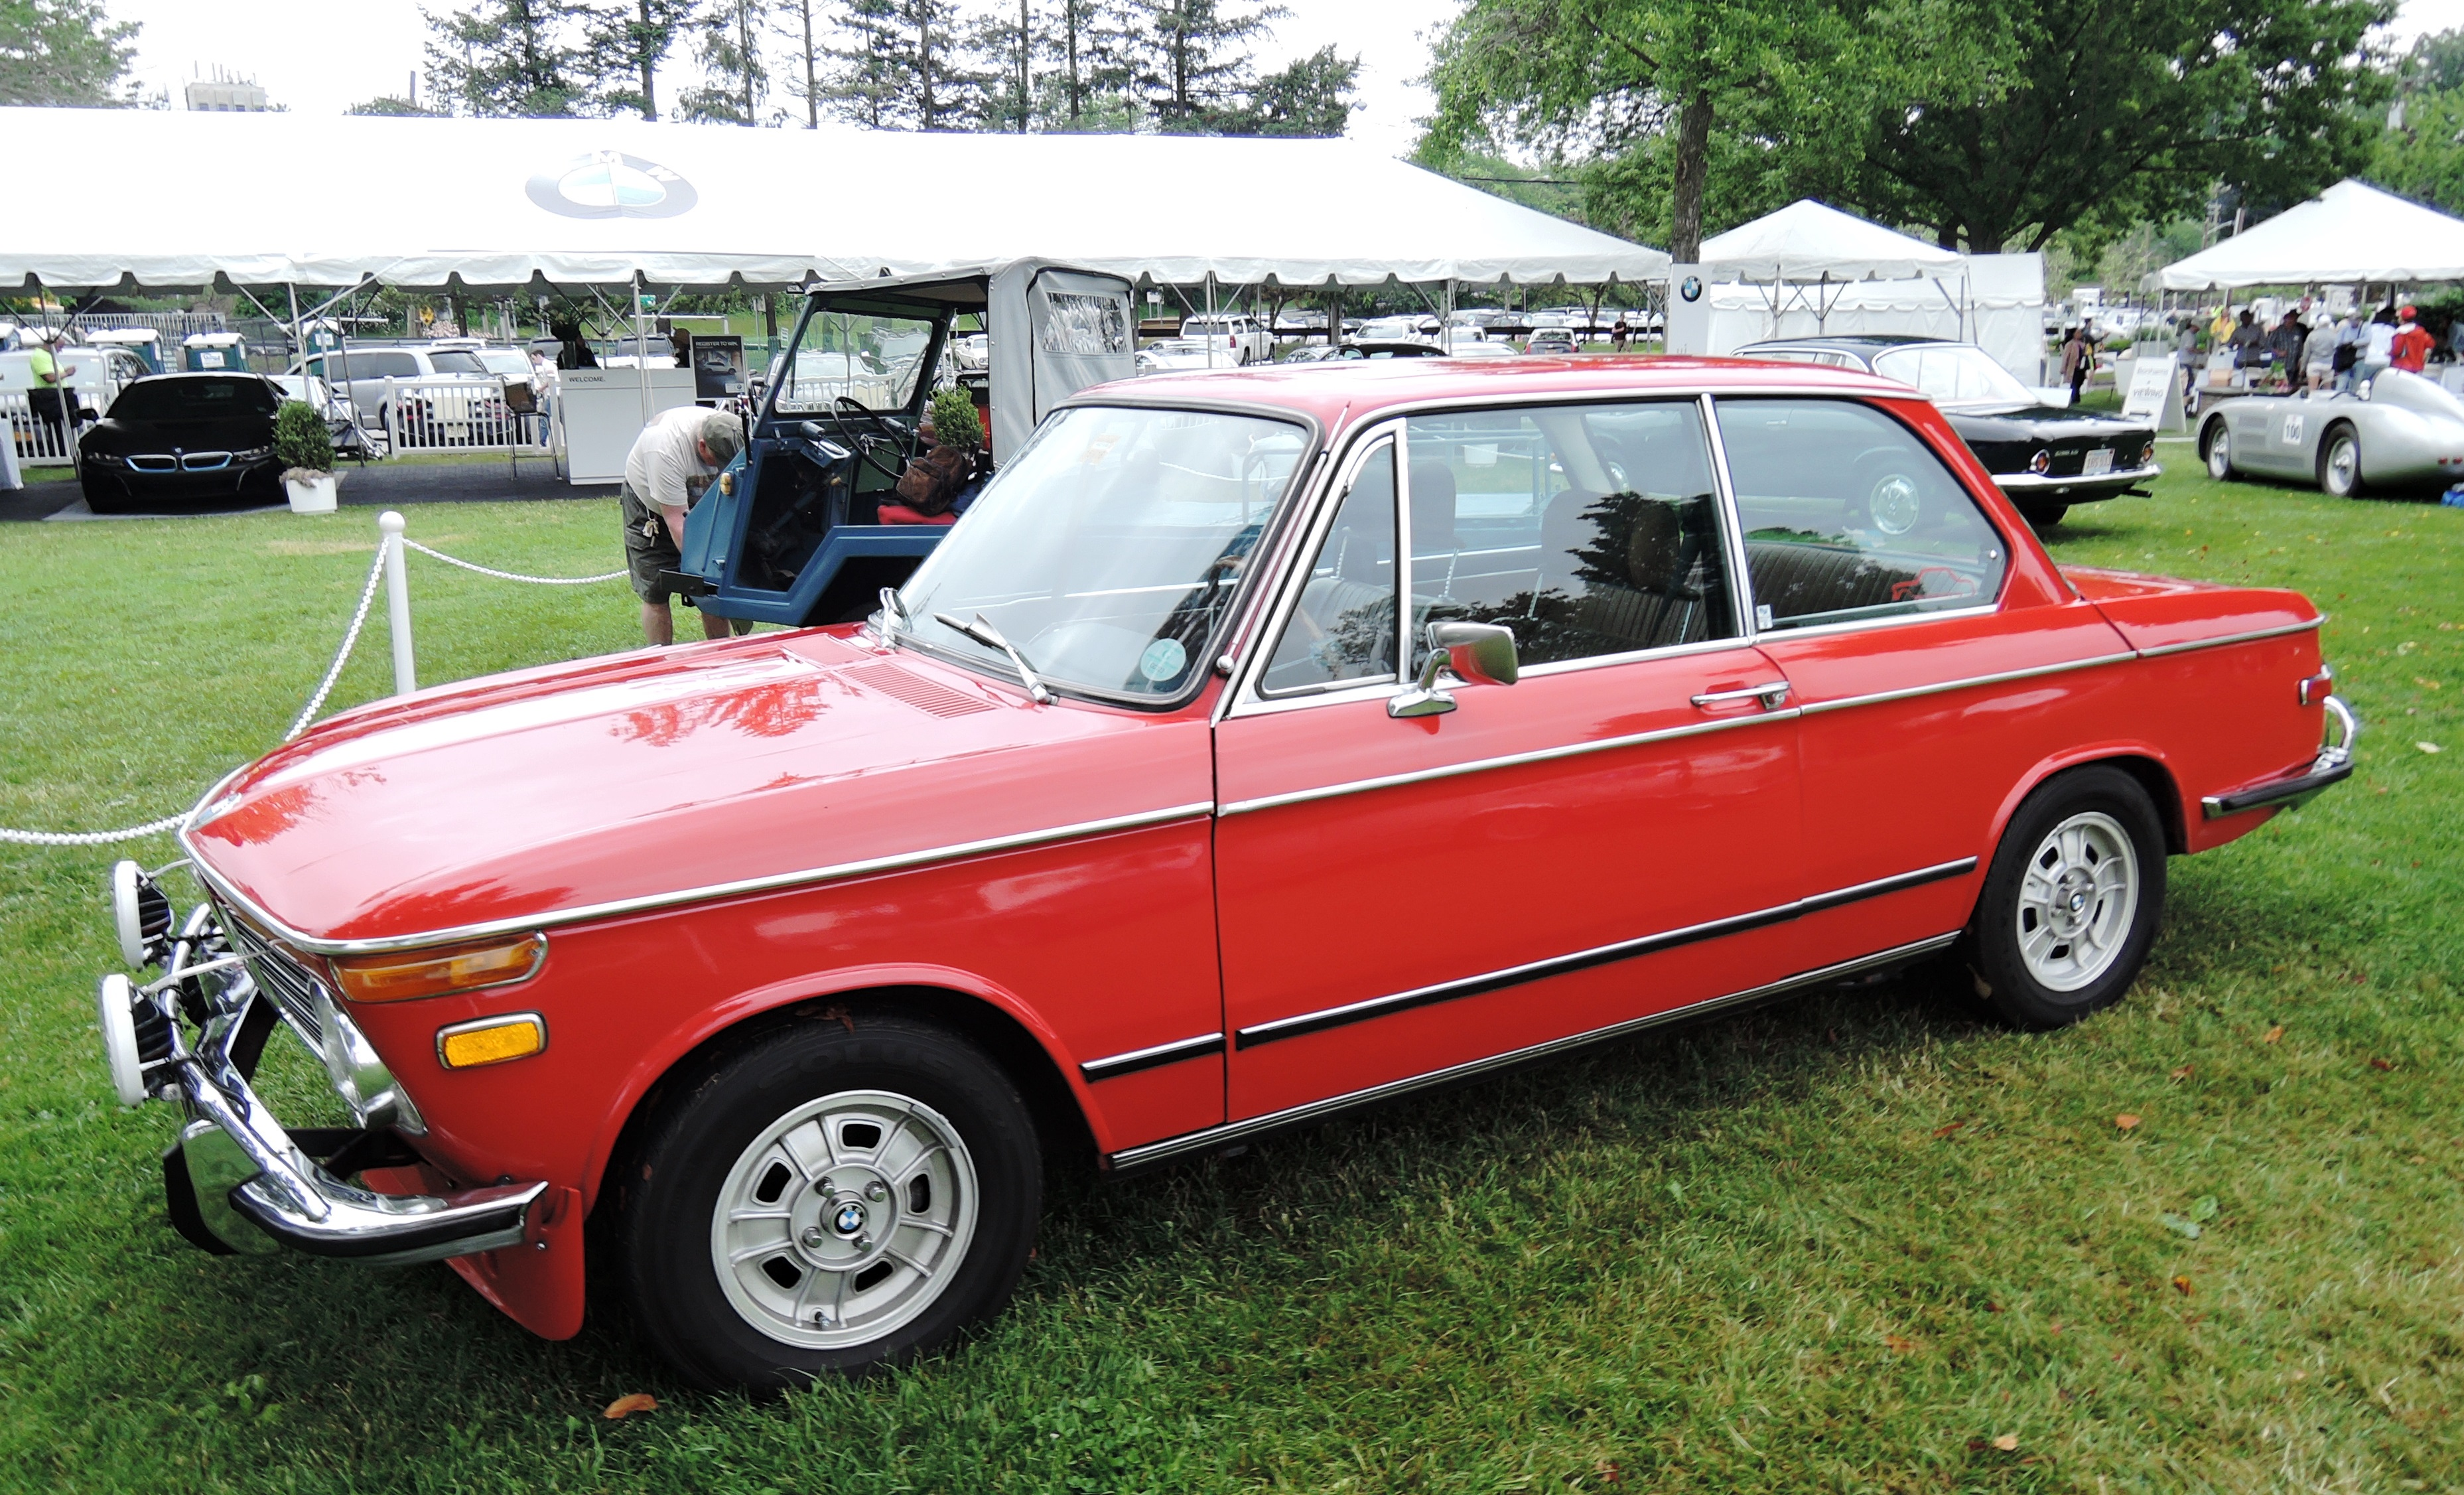 orange 1973 BMW 2002tii Sedan - Greenwich concours d'elegance